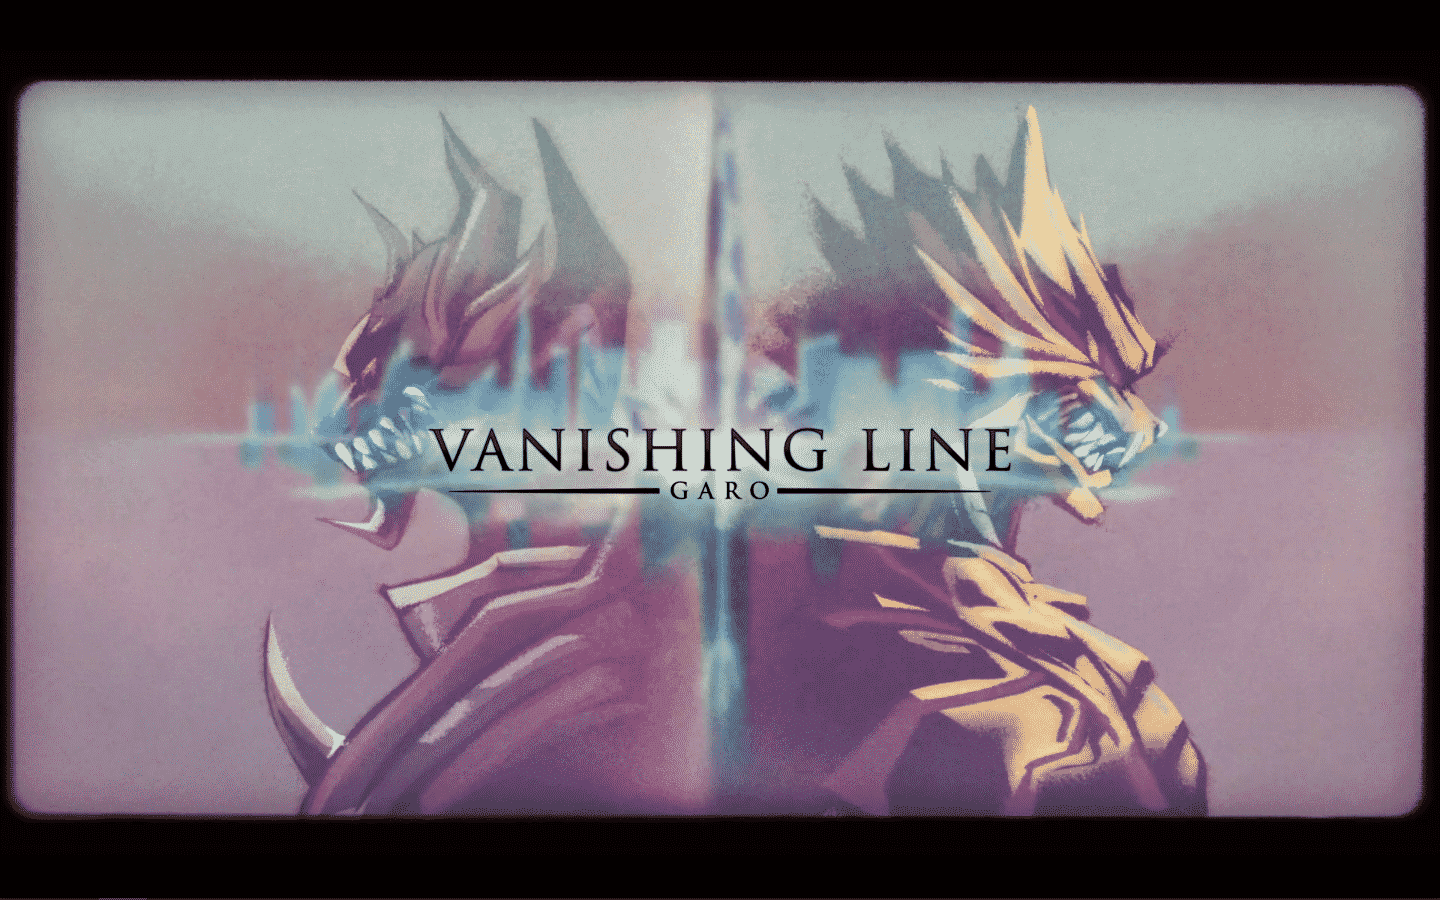 Garo - Vanishing Line Season 1 Episode 13 God's Will - Title Card